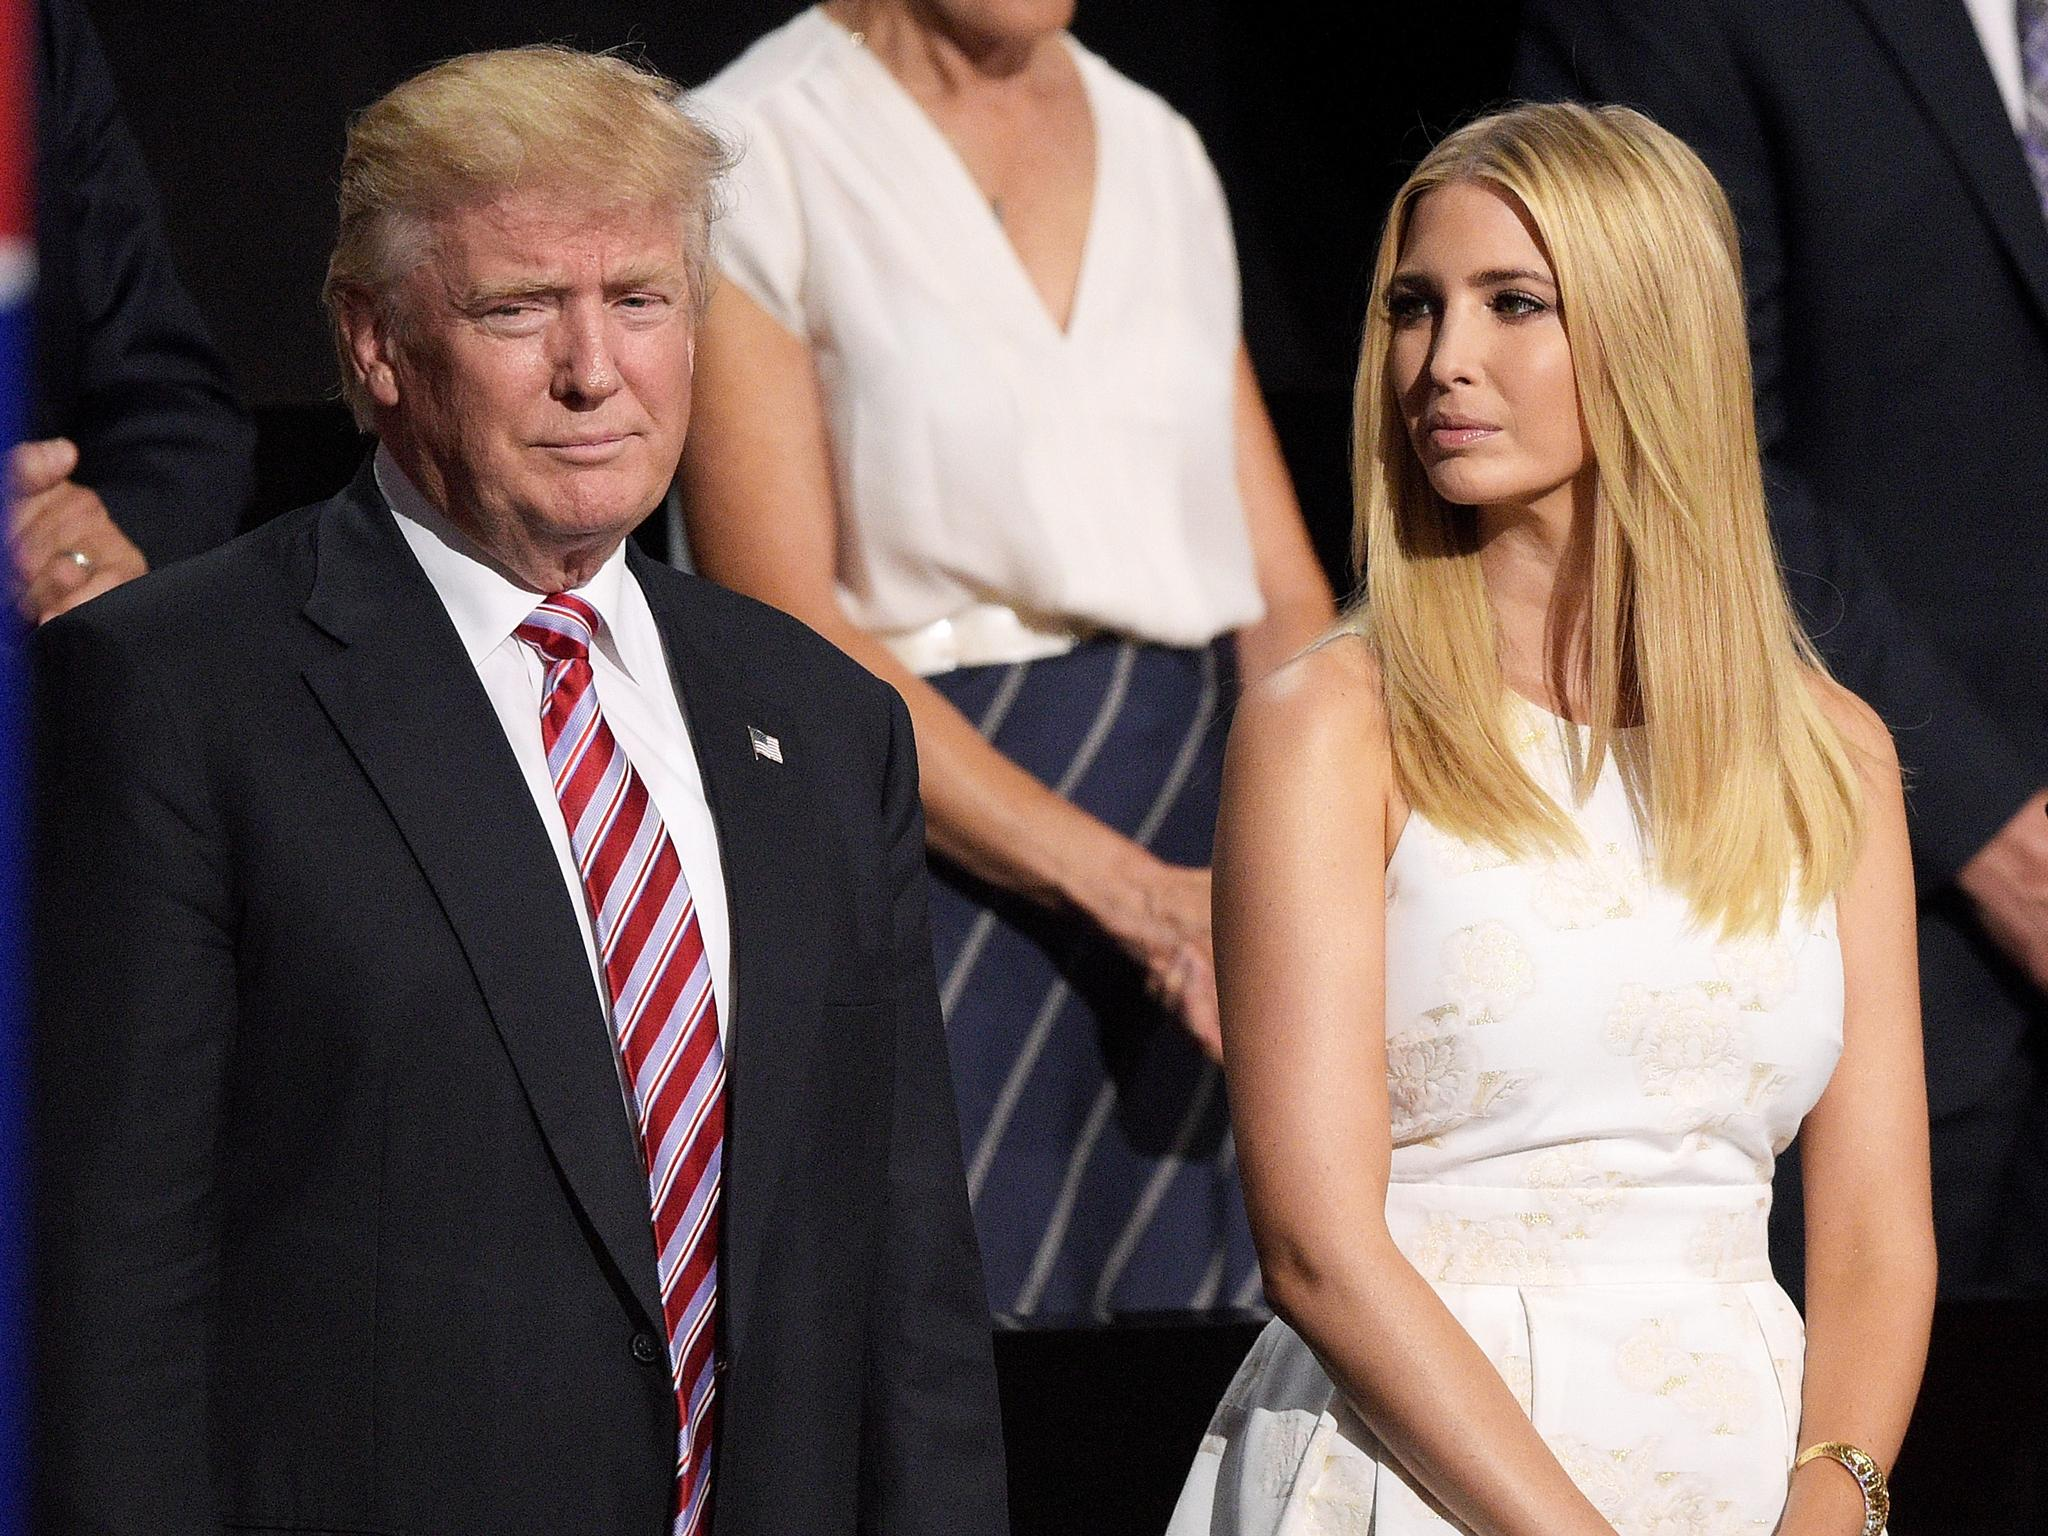 Image result for Ivanka Trump and Donald Trump